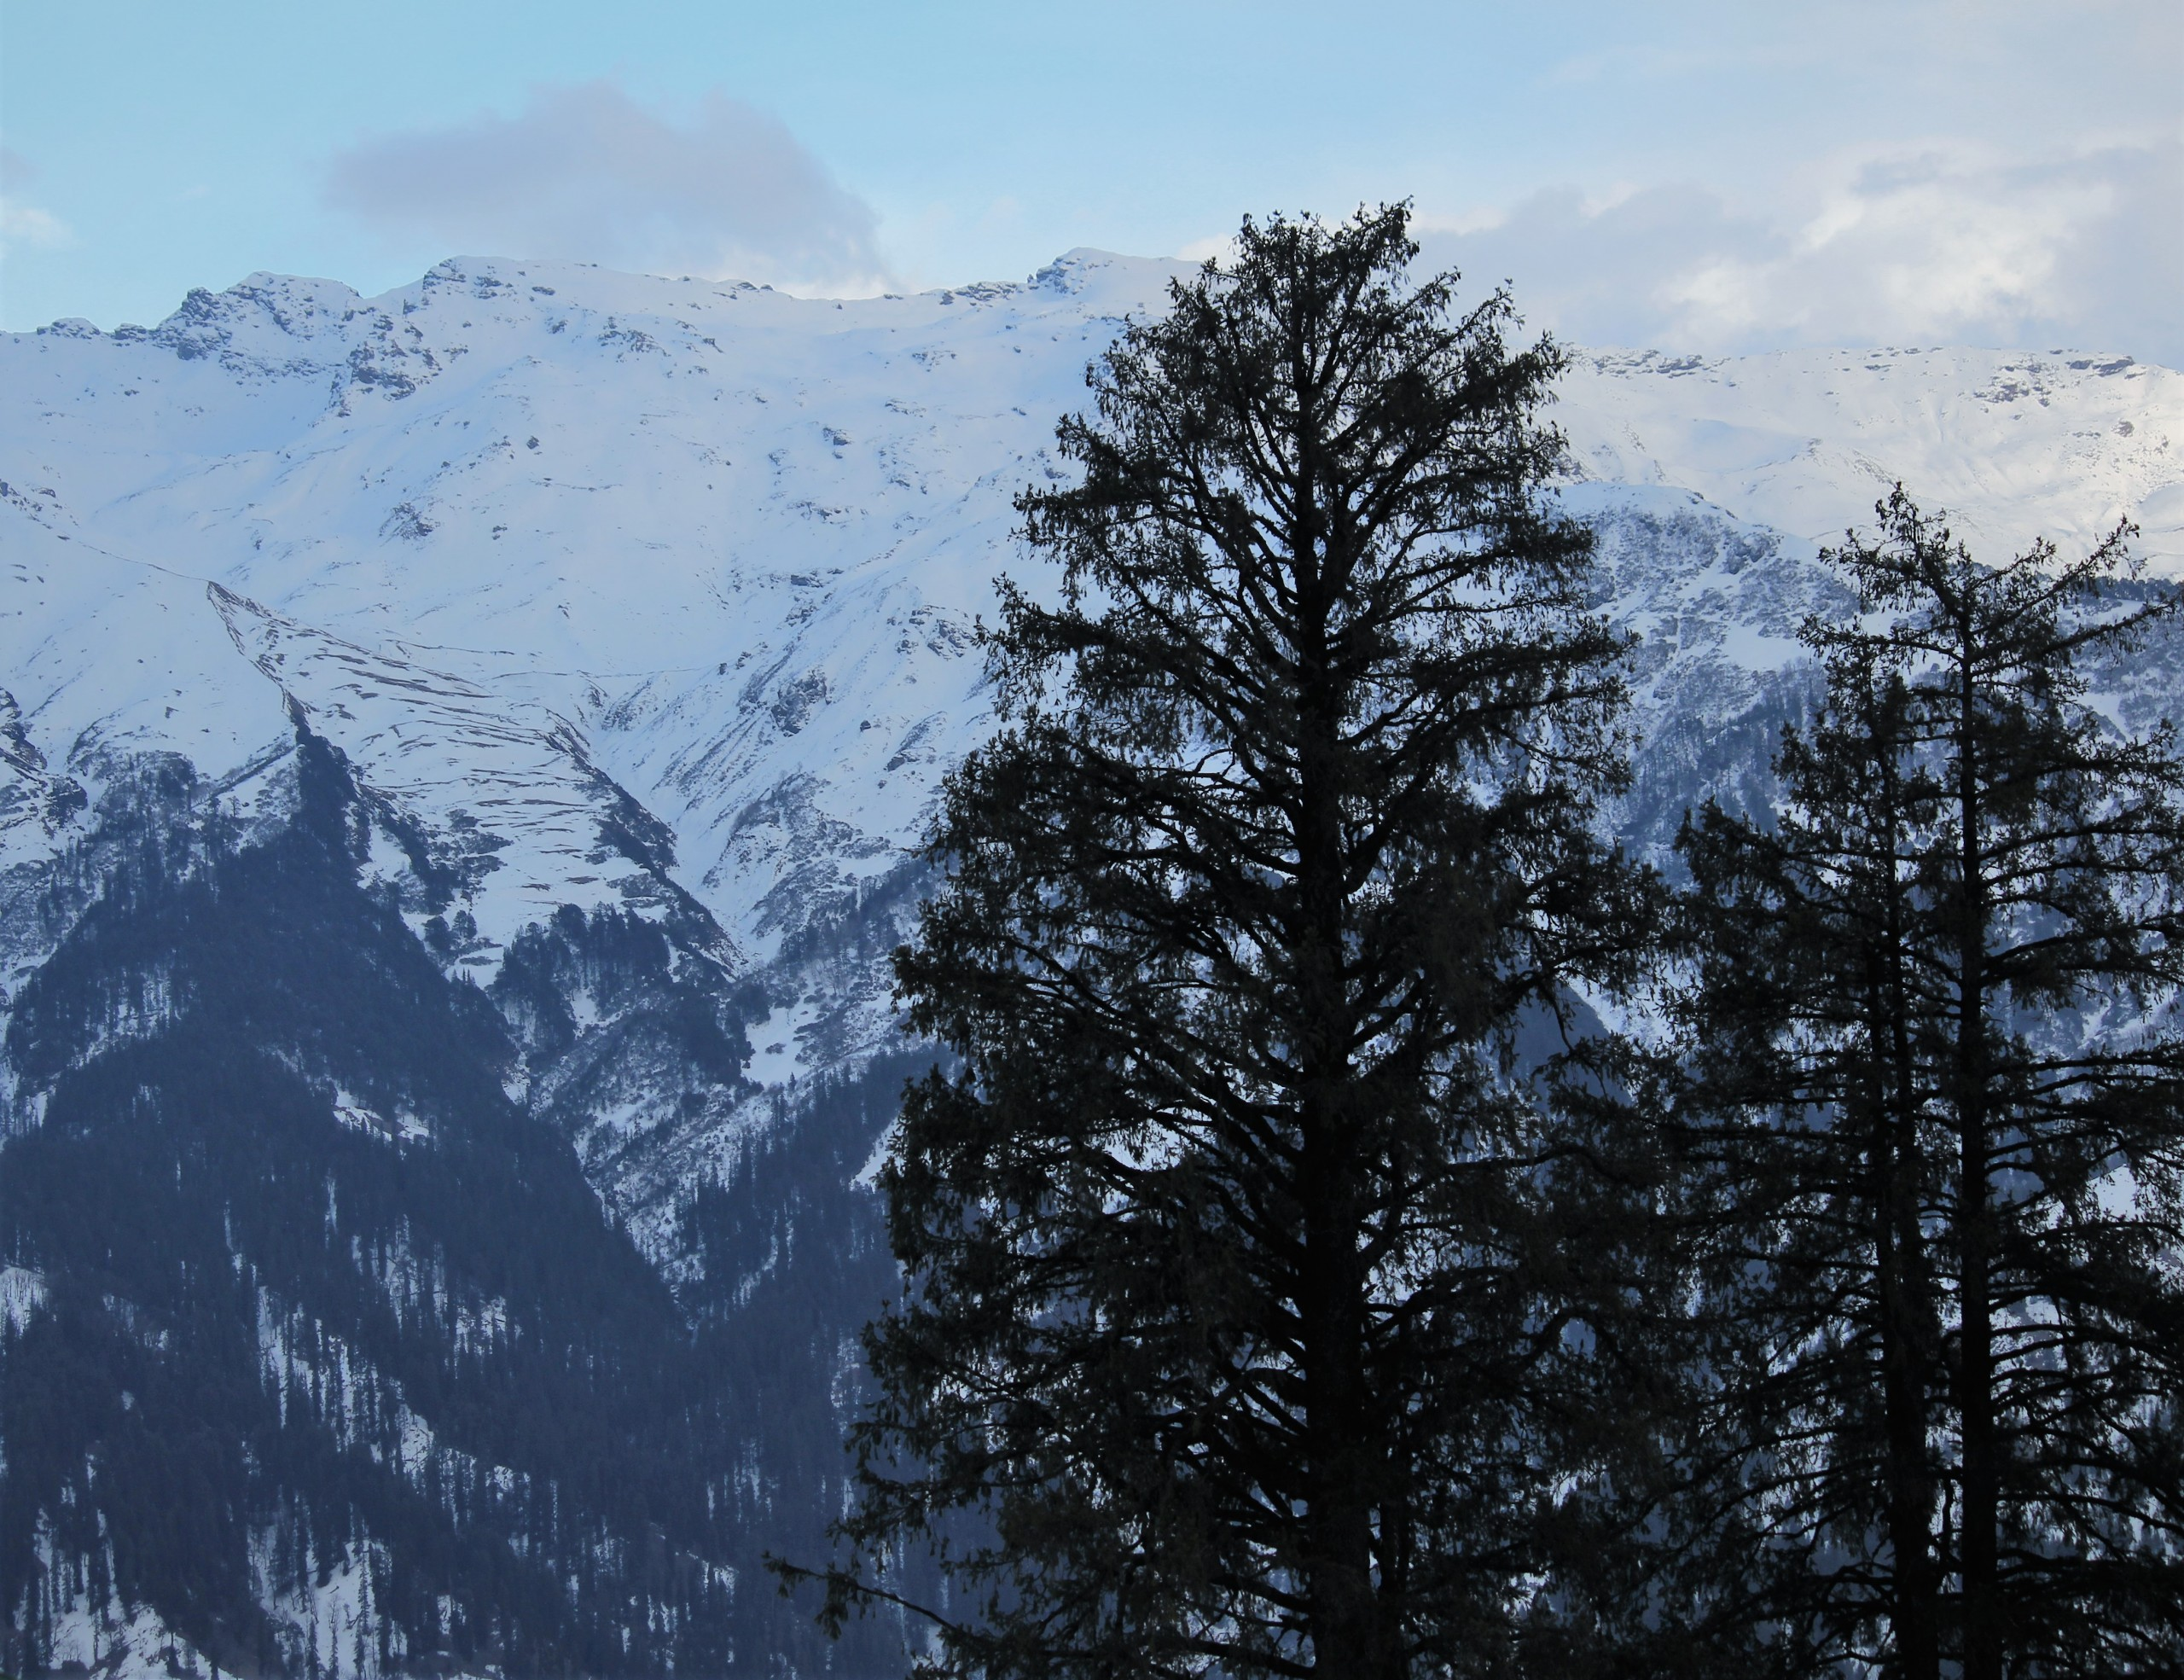 Snow-capped mountains and trees